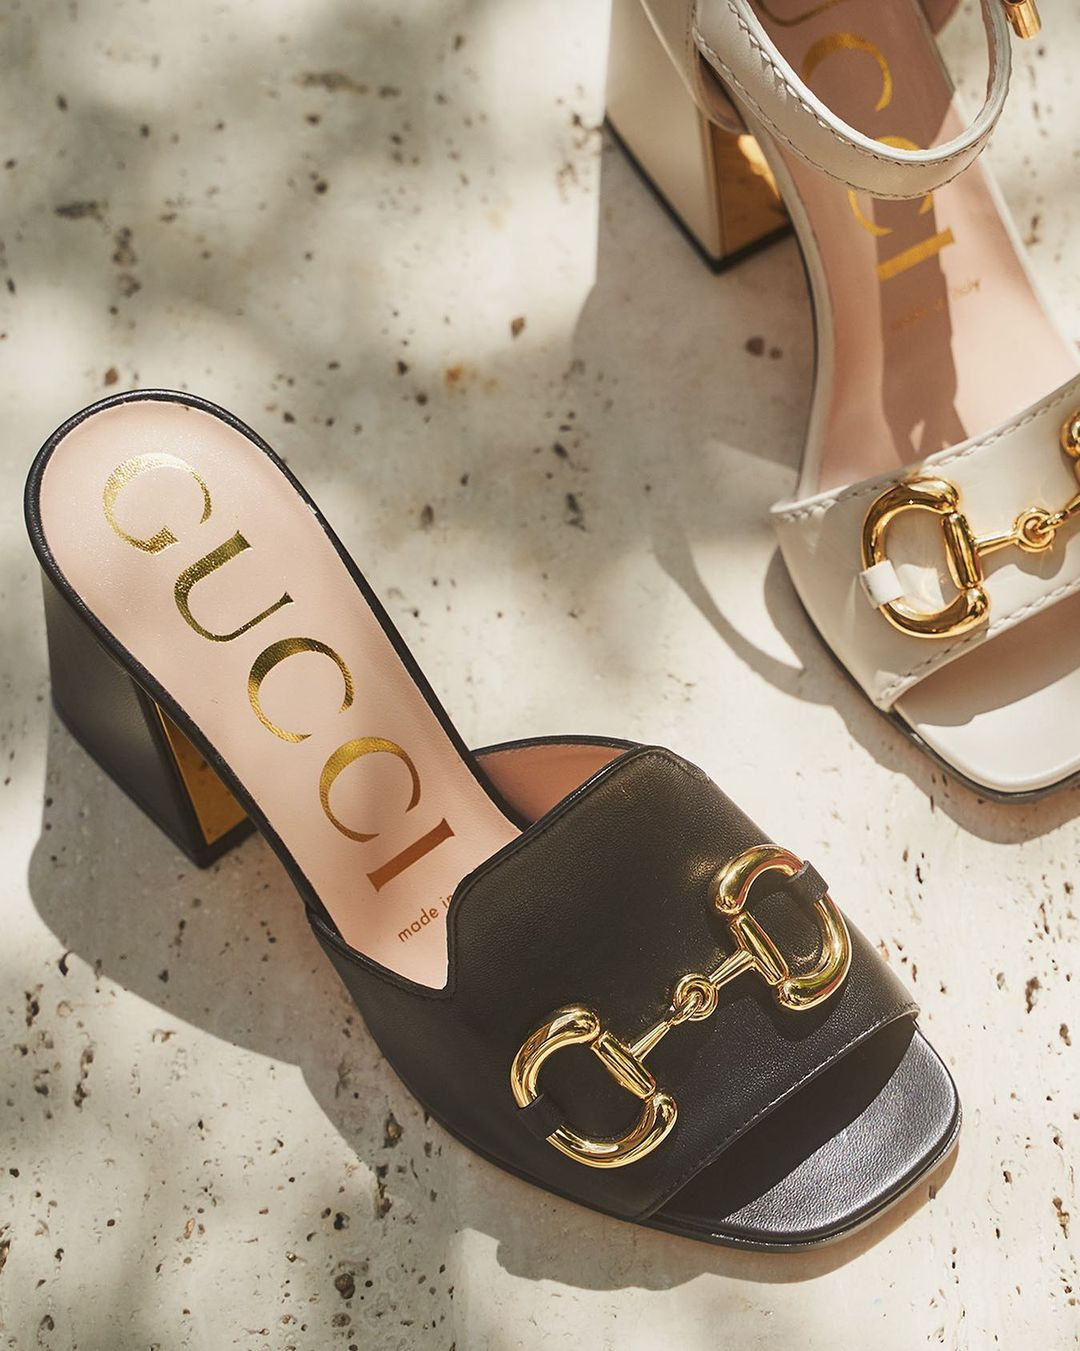 fashion, gucci shoes, and gucci image